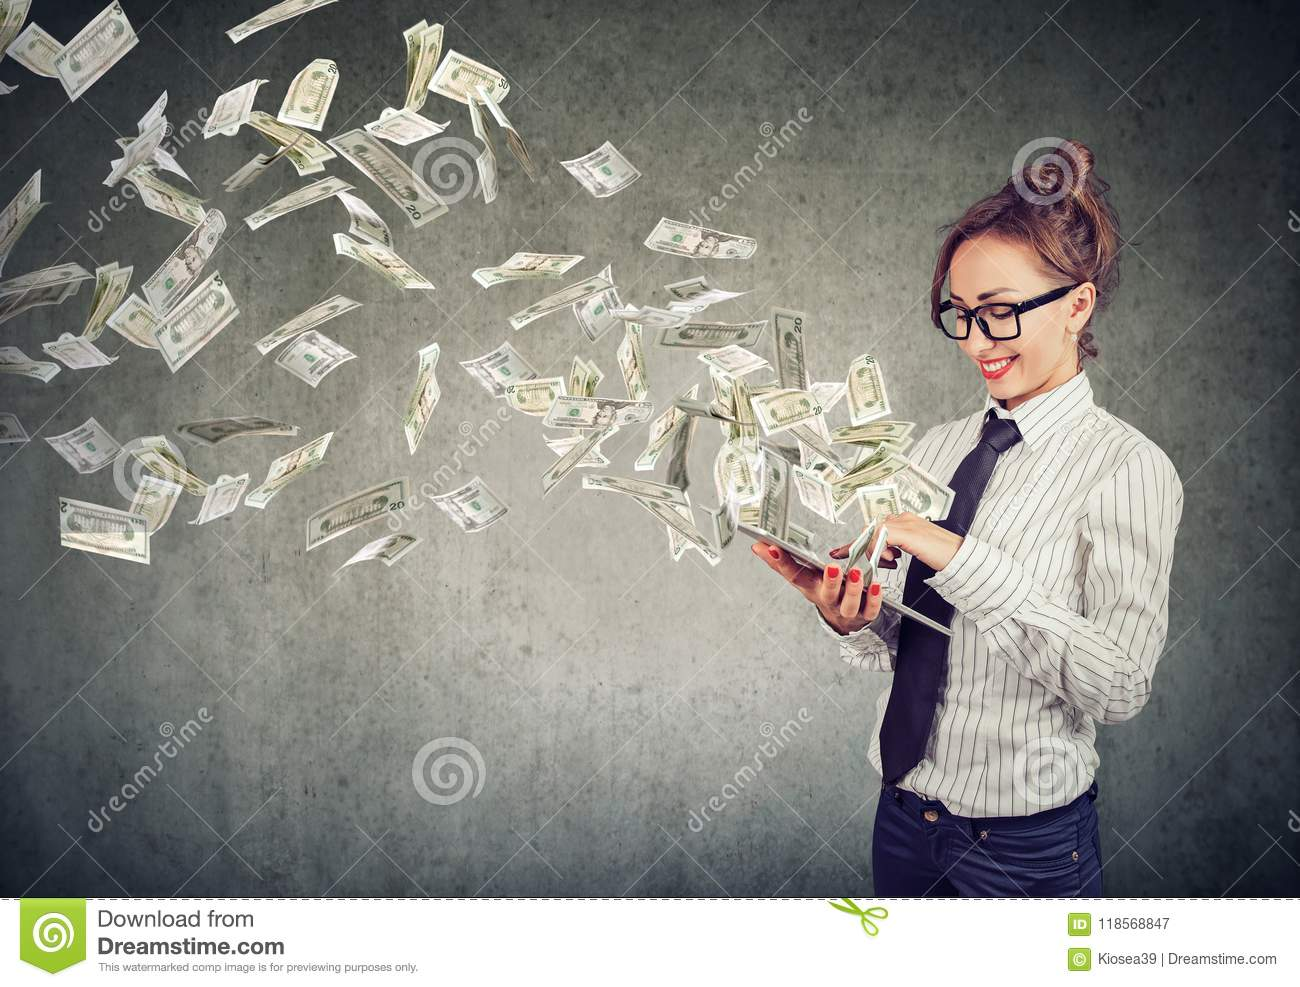 Winning Money Online